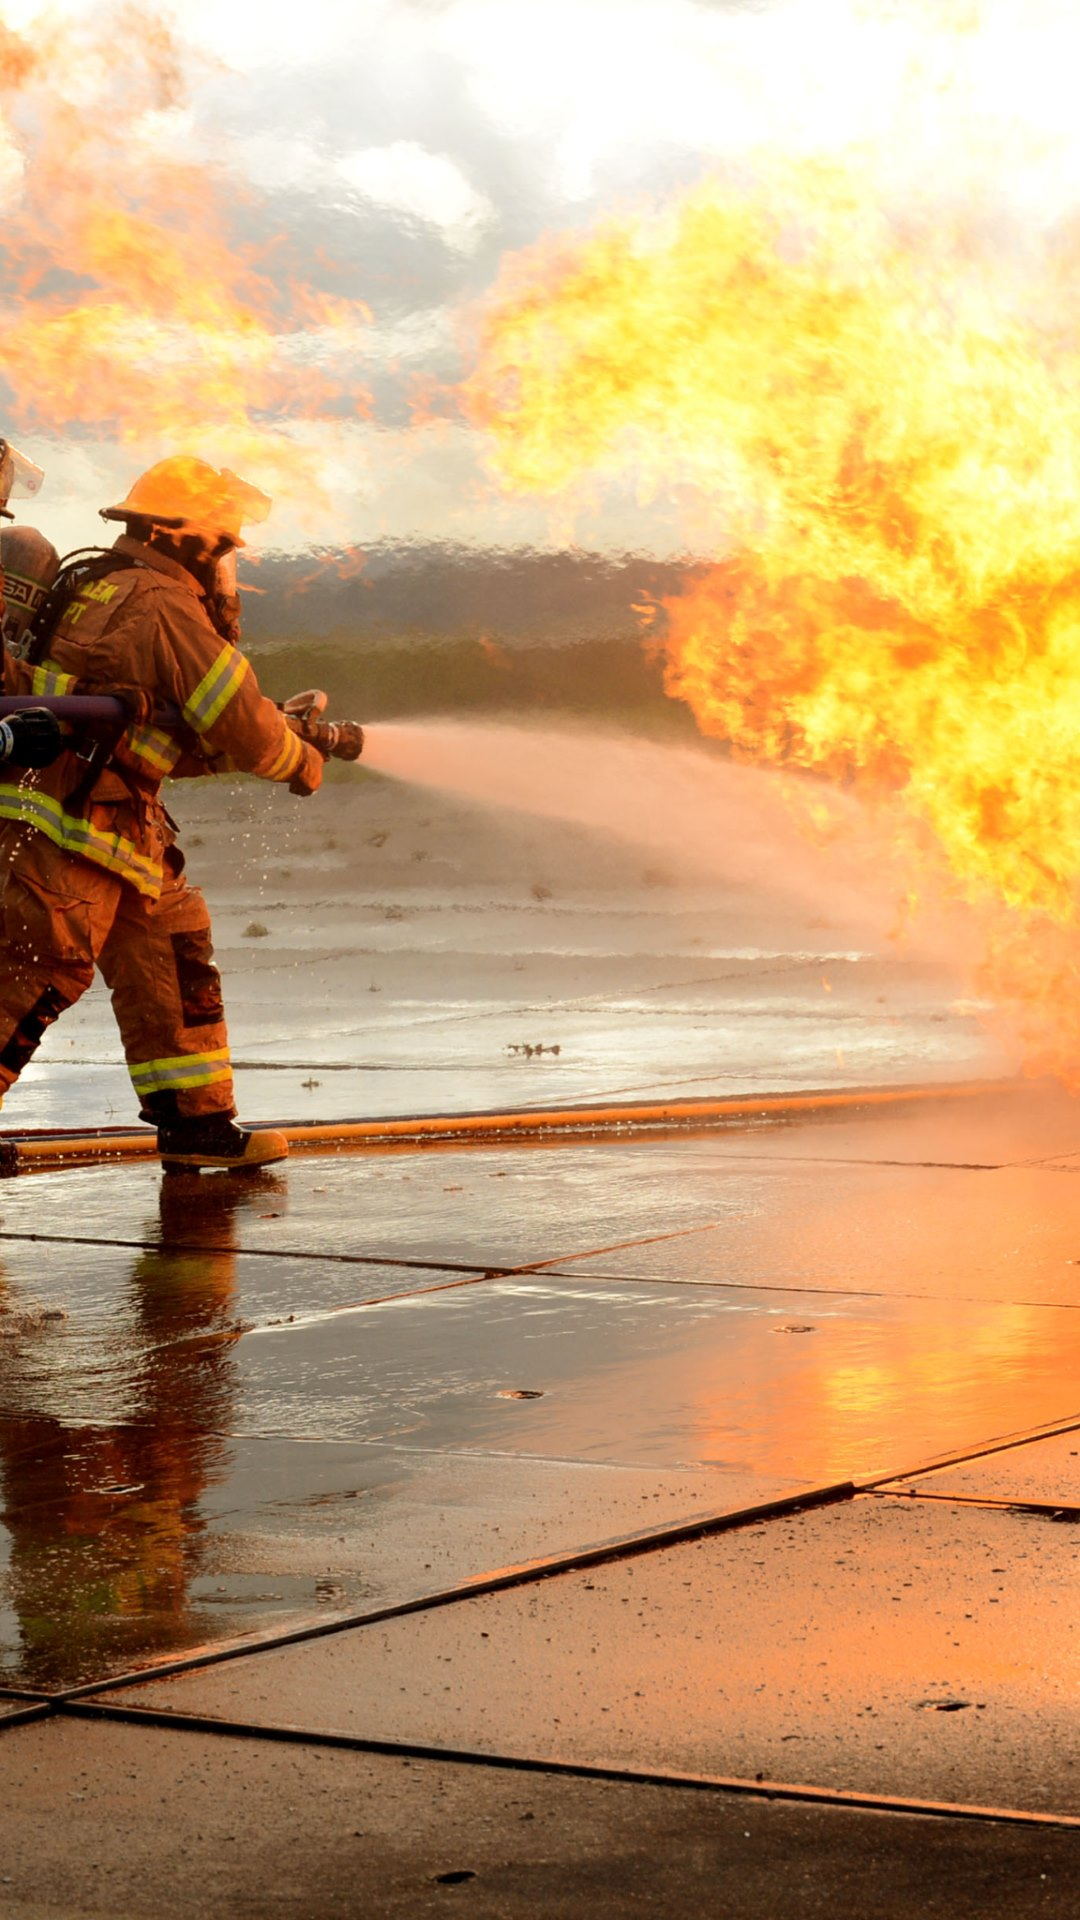 Similiar Firefighter Wallpapers 1280X800 Keywords